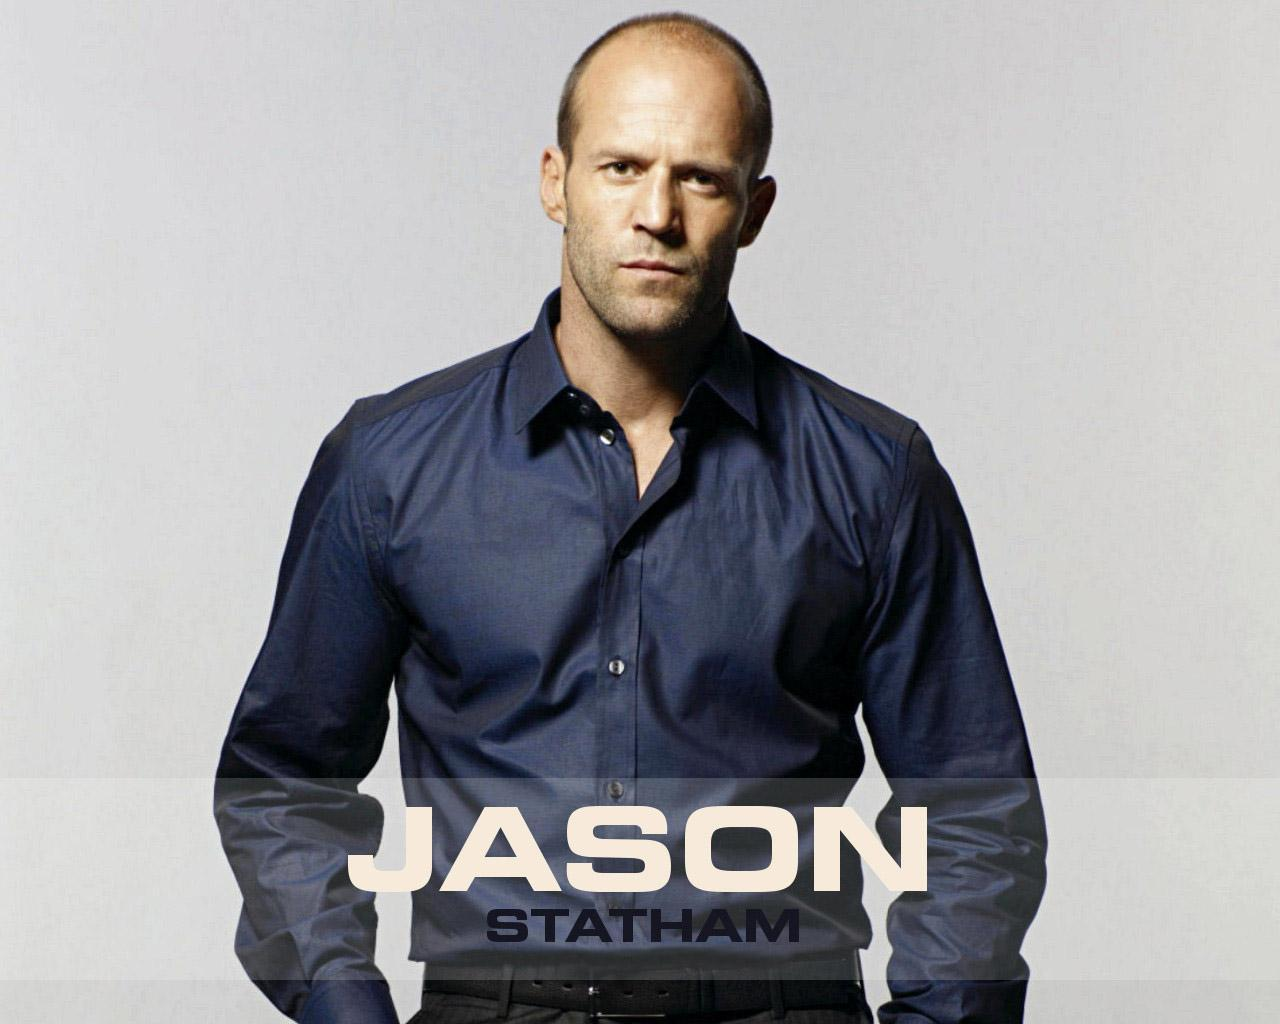 Fourth Question - Theme: Movies: In what movie does Jason Statham appear?